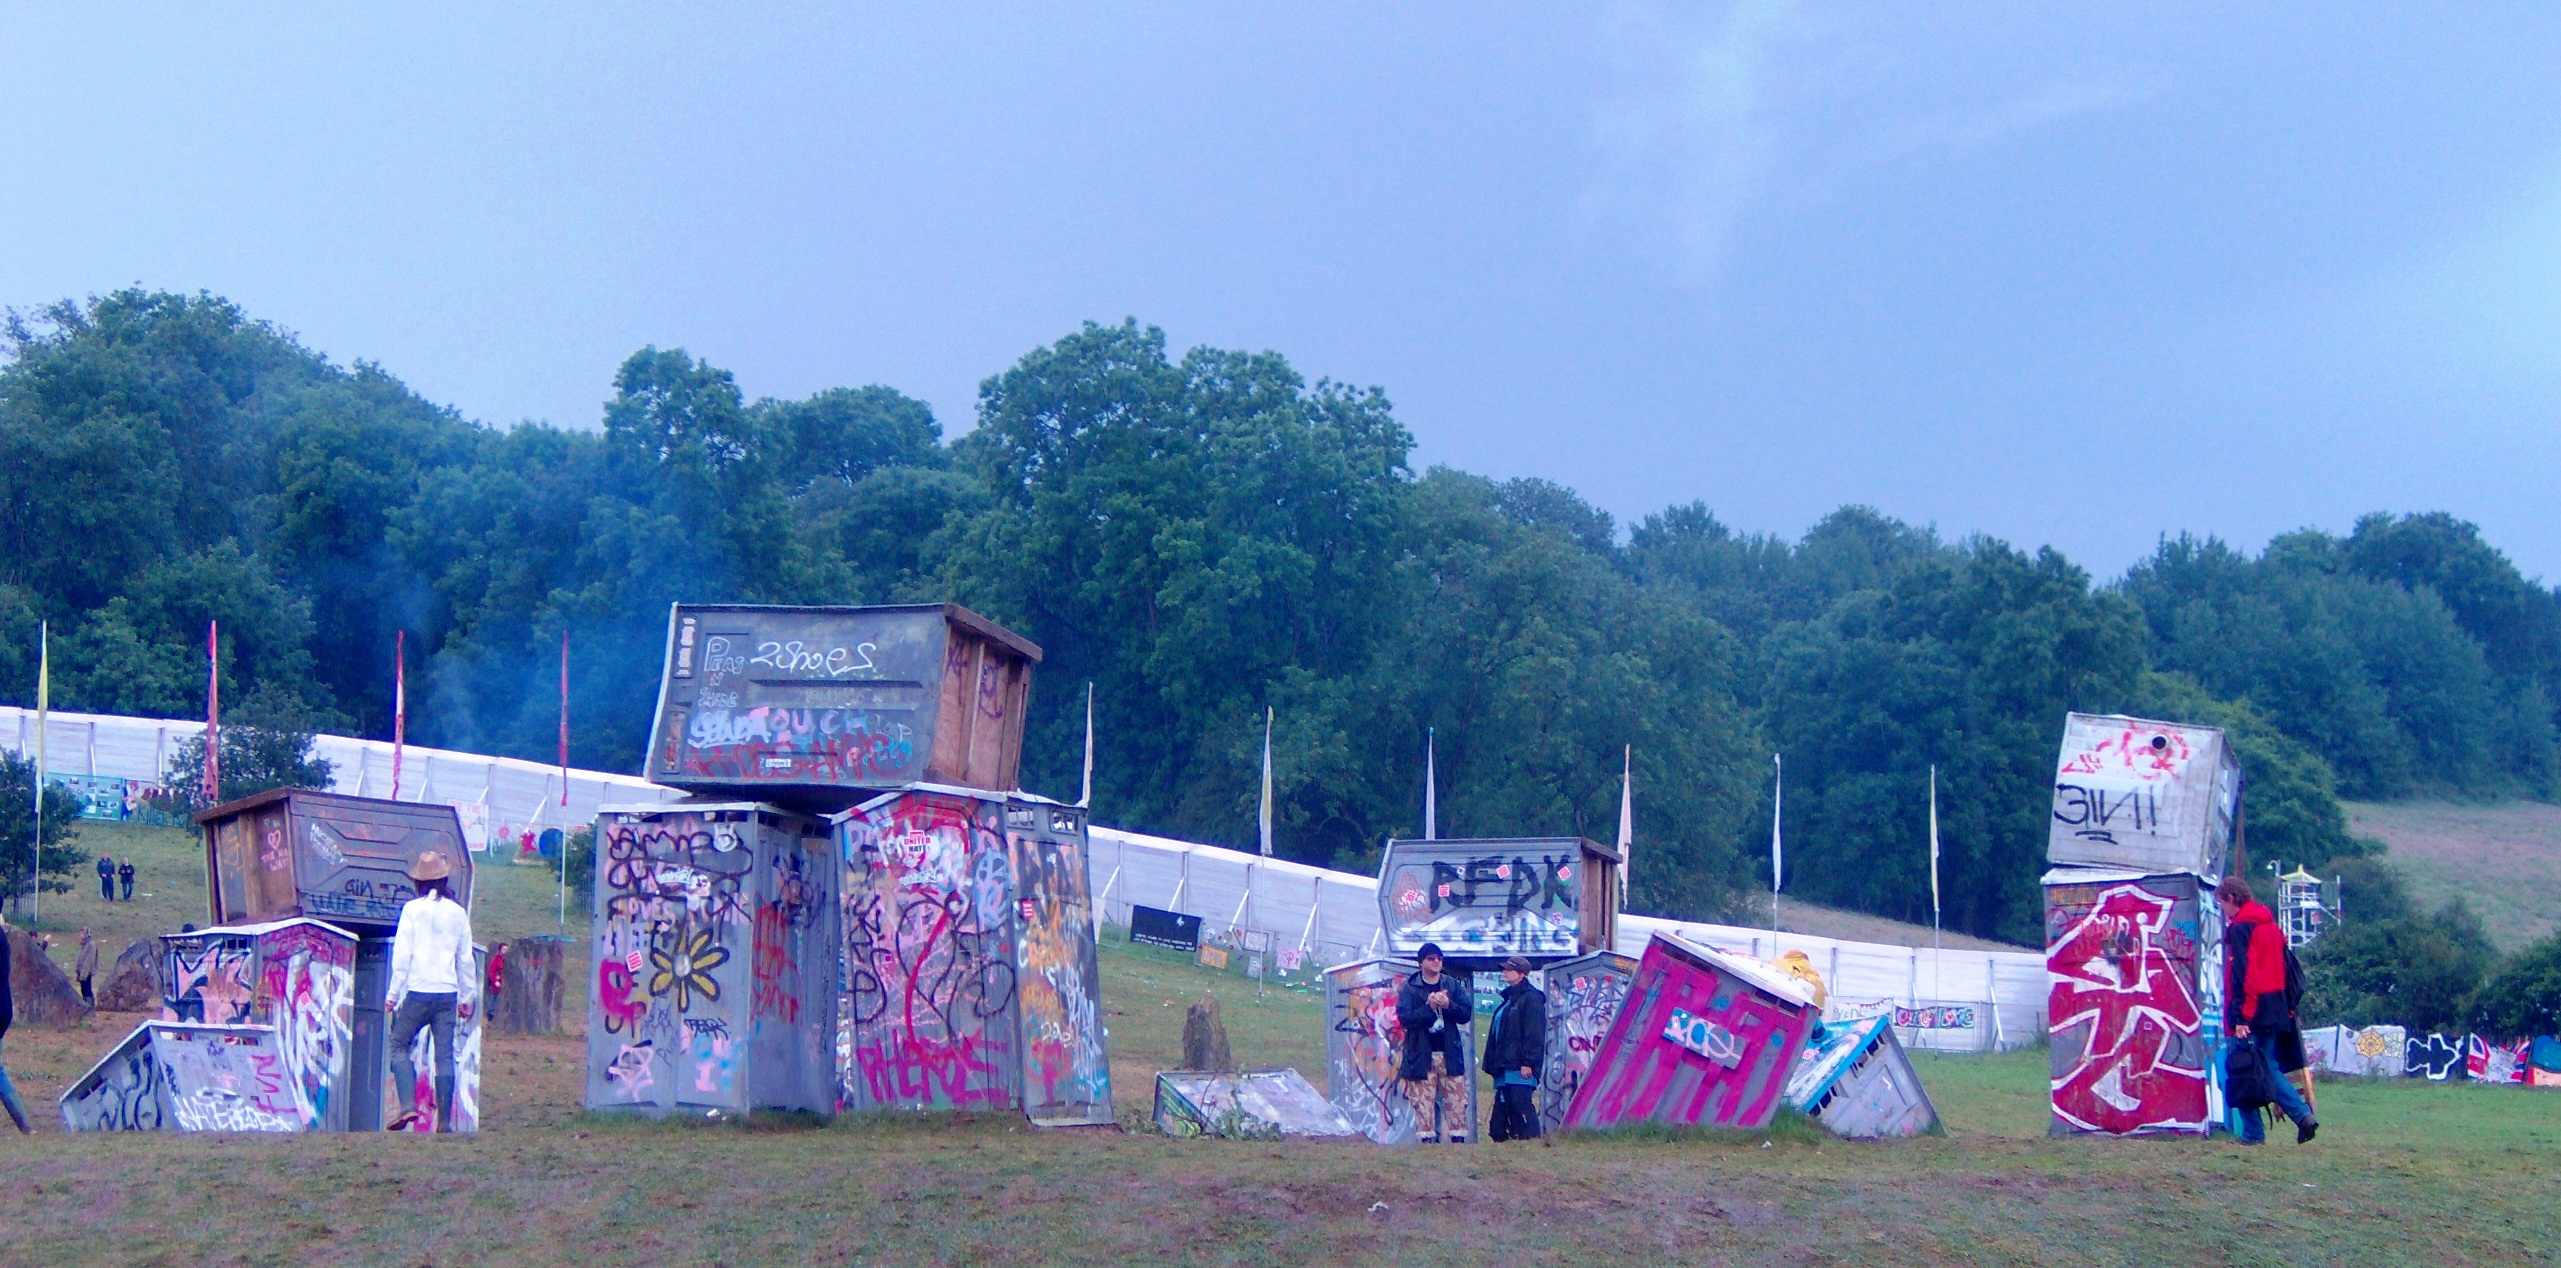 Banky's 'Stonehenge' display using portable toilets at Glastonbury Festival 2007.